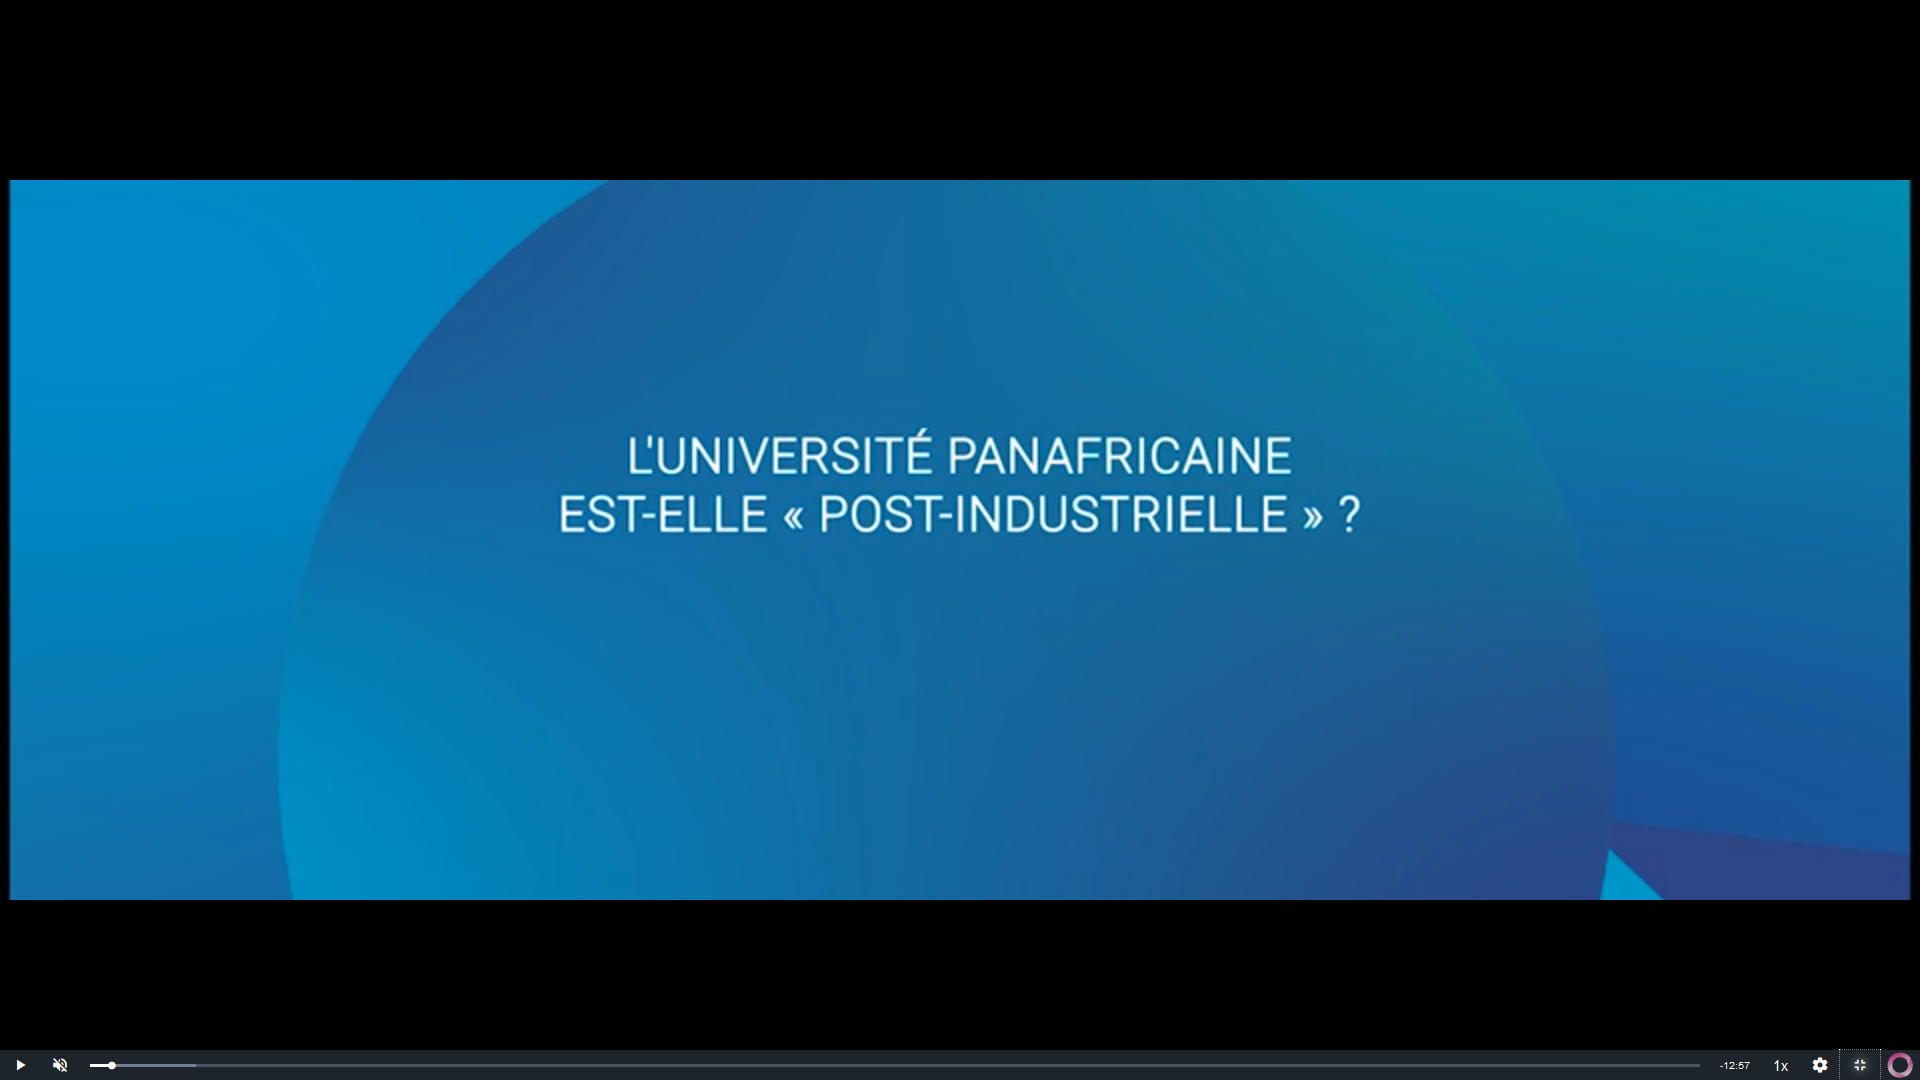 L'Université Panafricaine est-elle « post-industrielle » ?